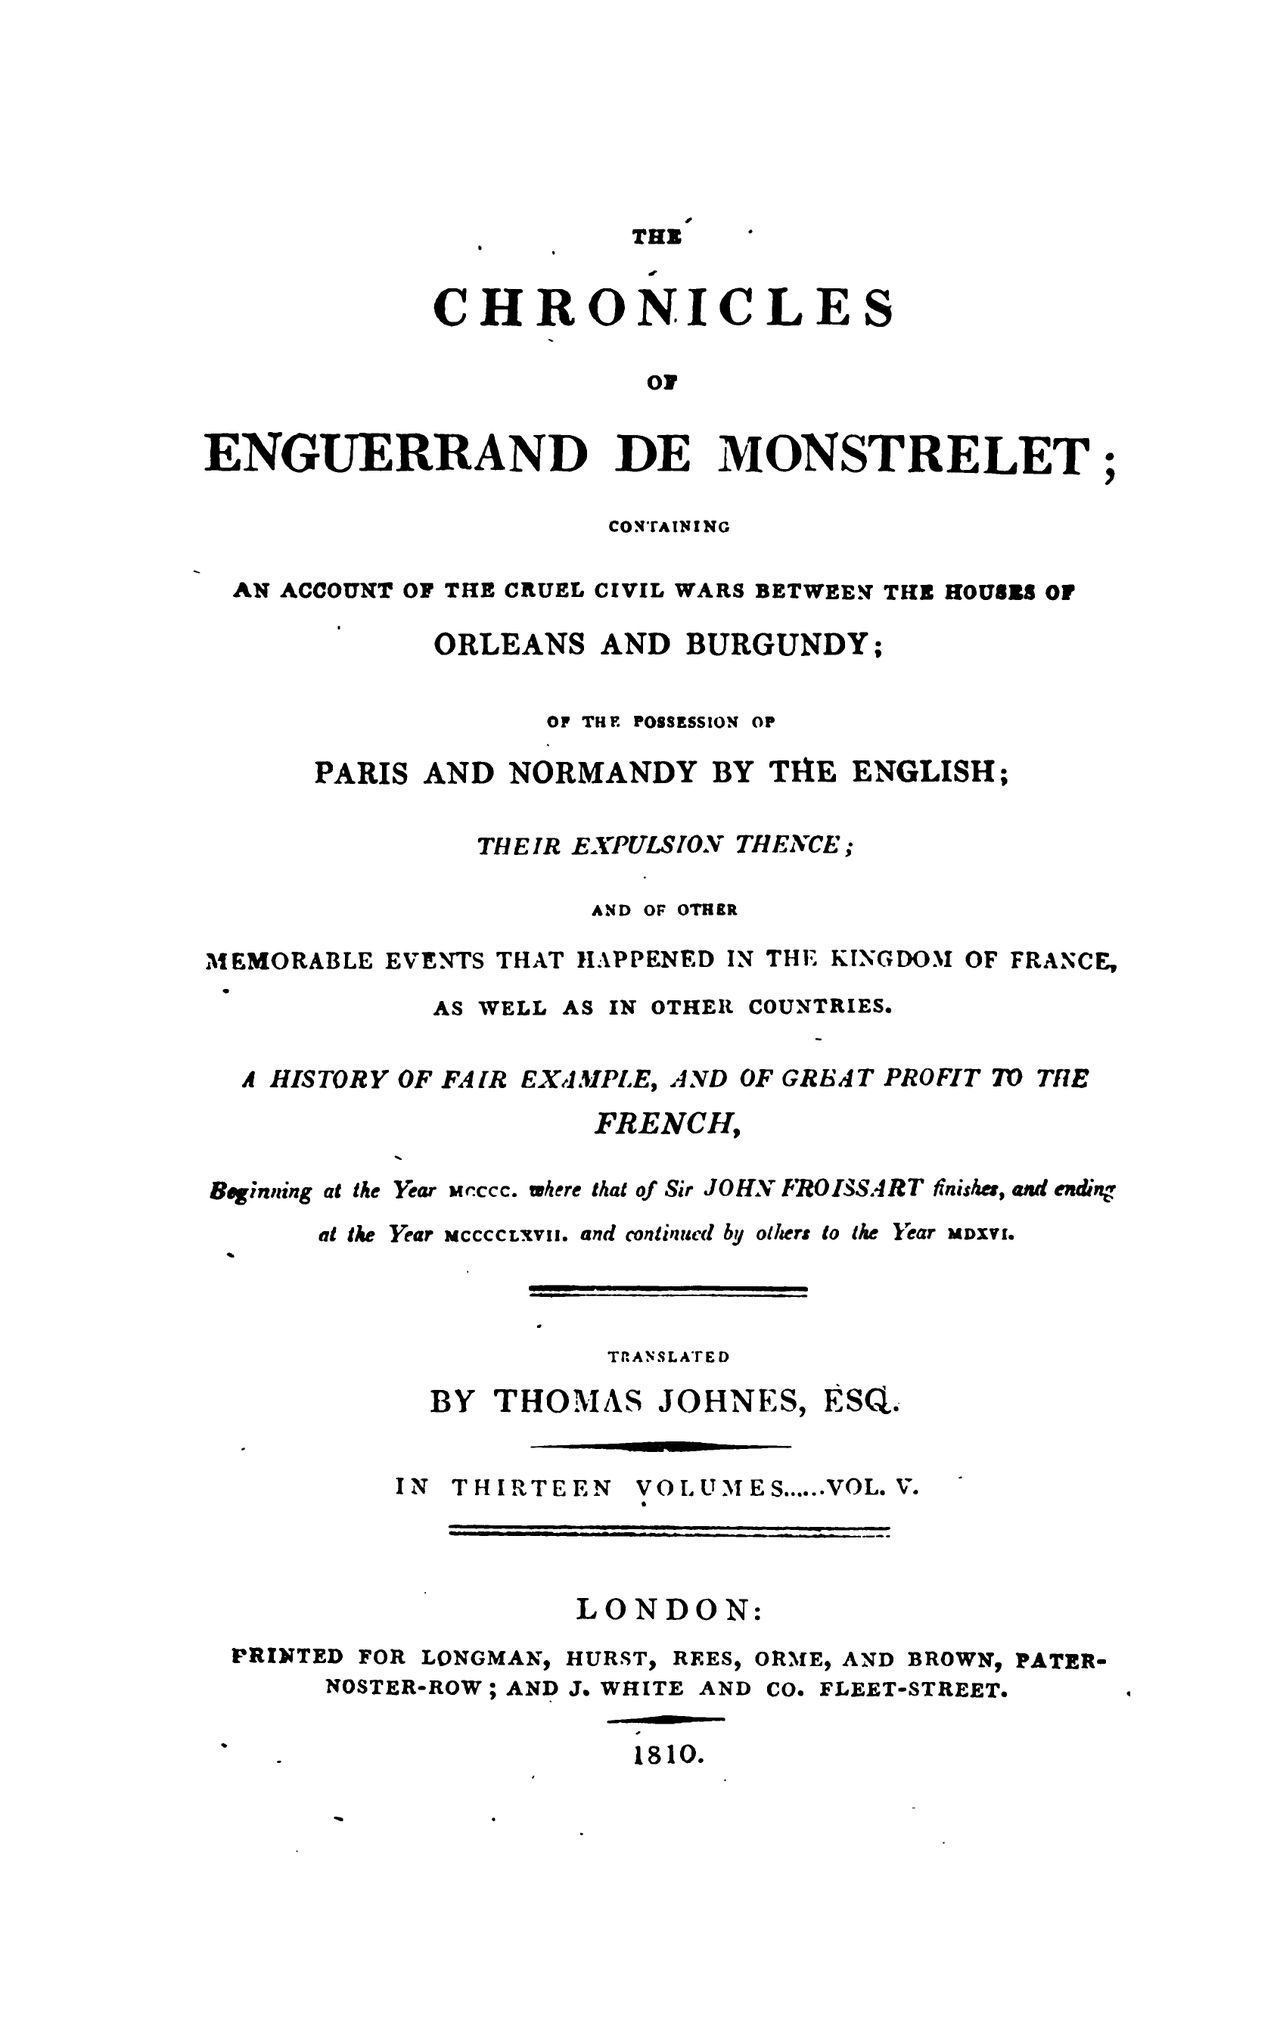 Enguerrand de Monstrelet chronicle vol.5